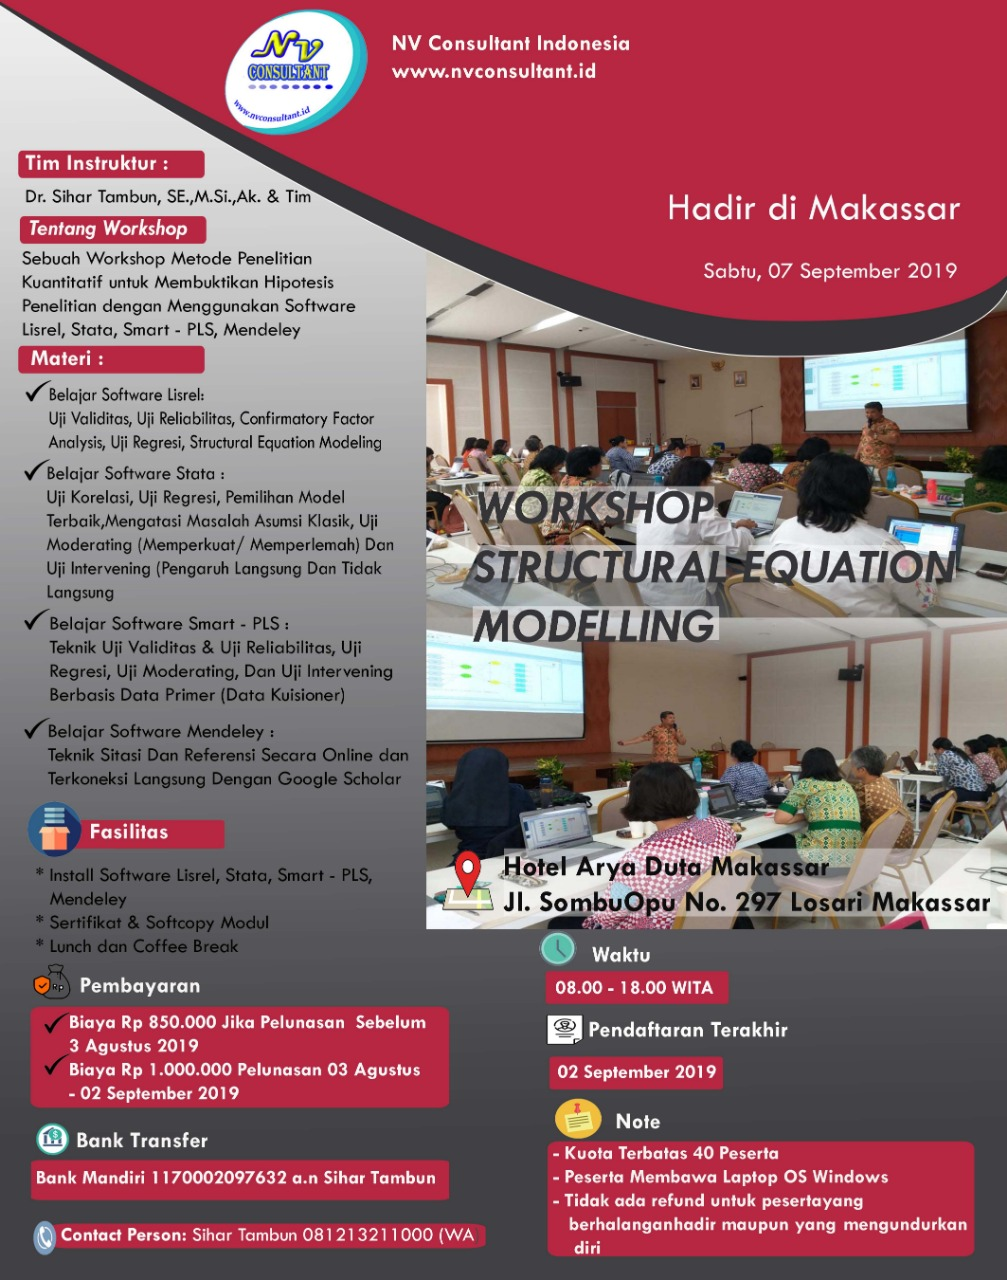 WORKSHOP STRUCTURAL EQUATION MODELLING - MAKASAR